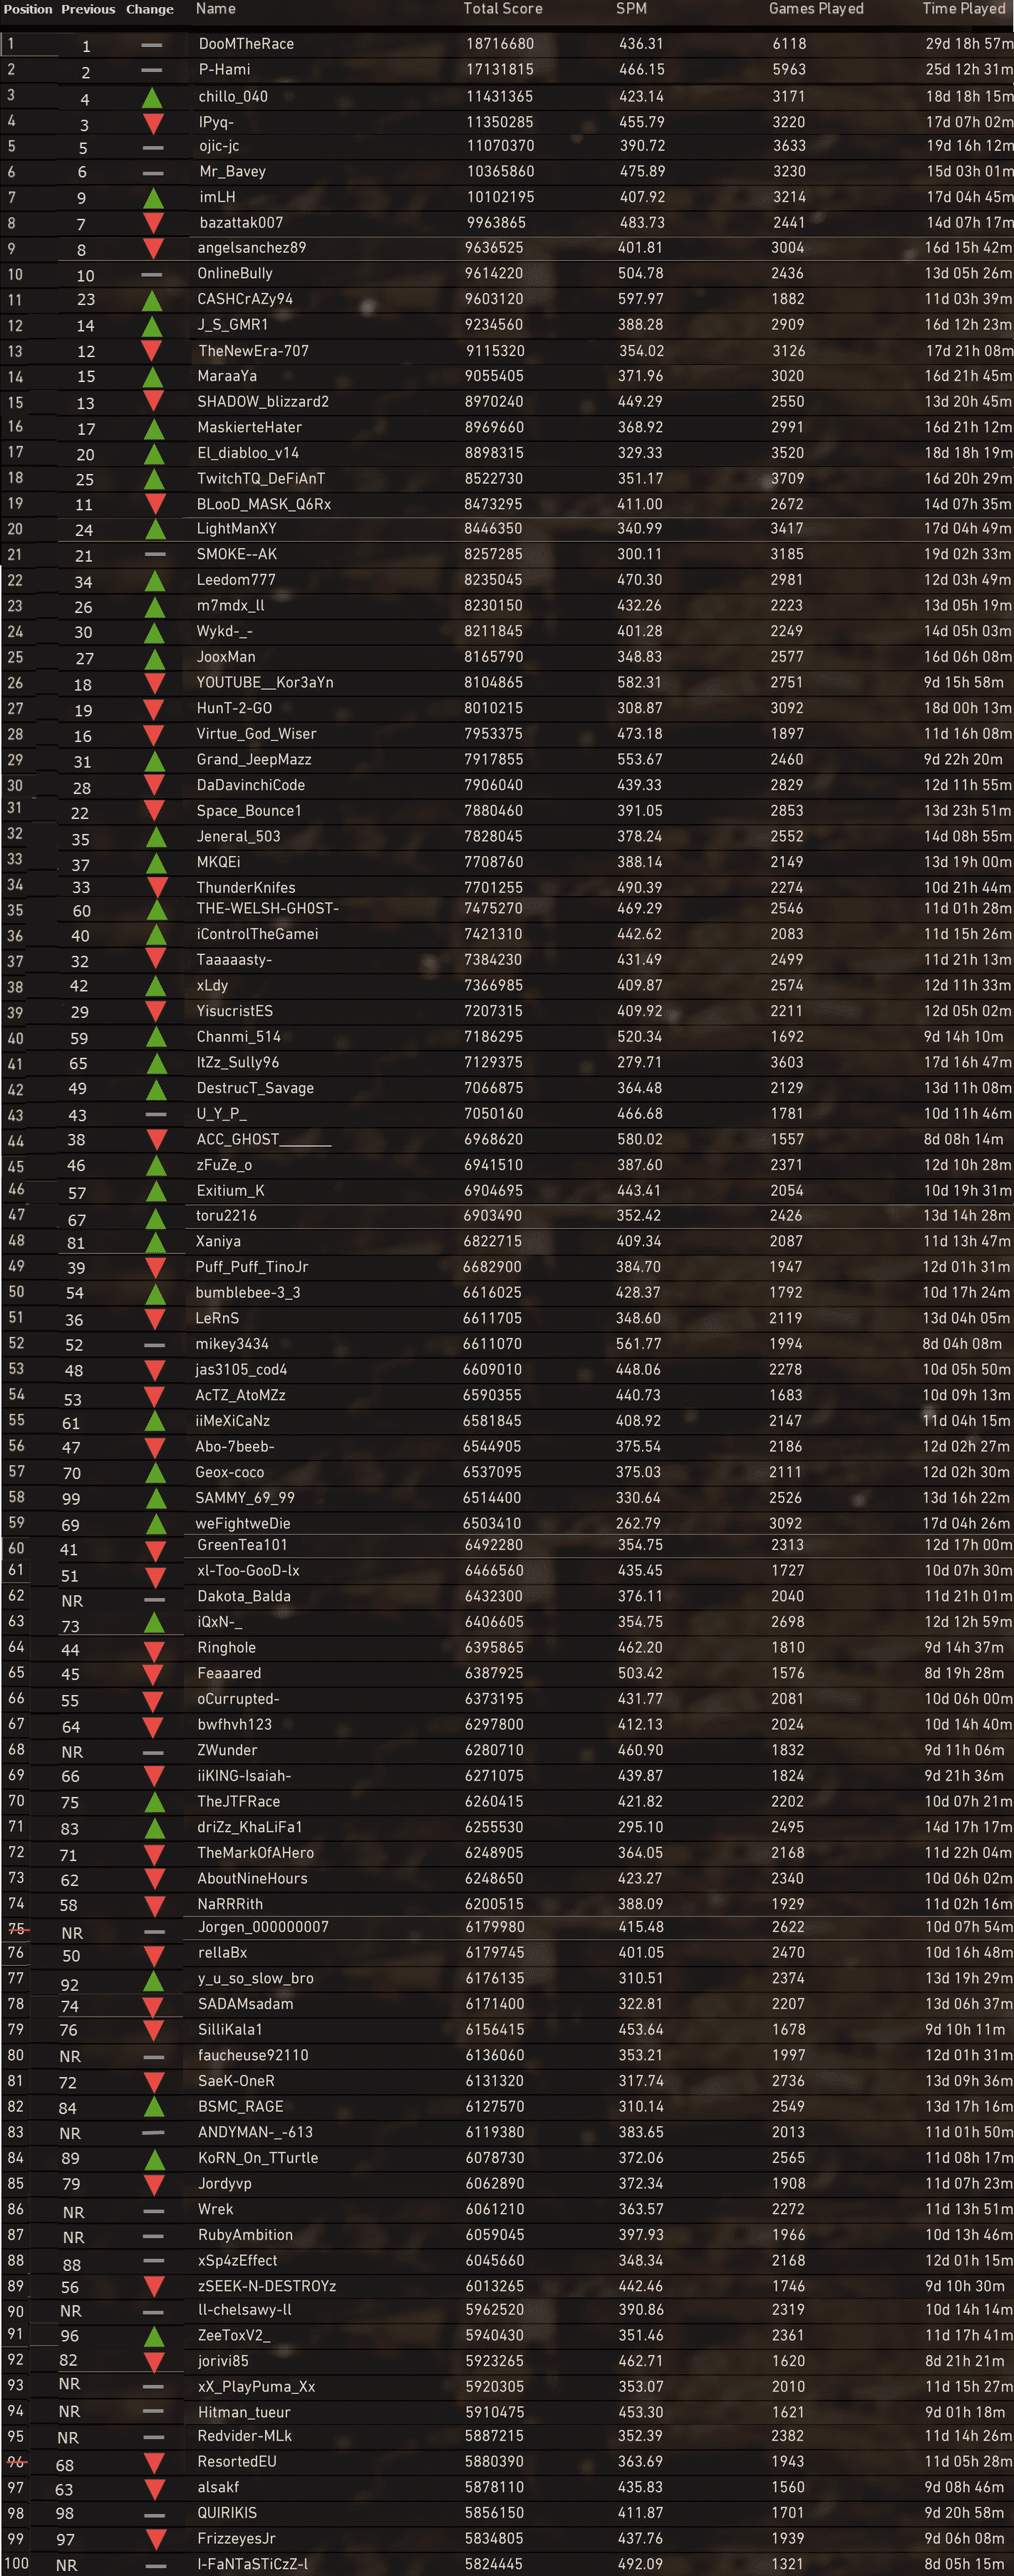 Call-of-Duty-WWII-Leaderboards-PS4-Dec17-2017